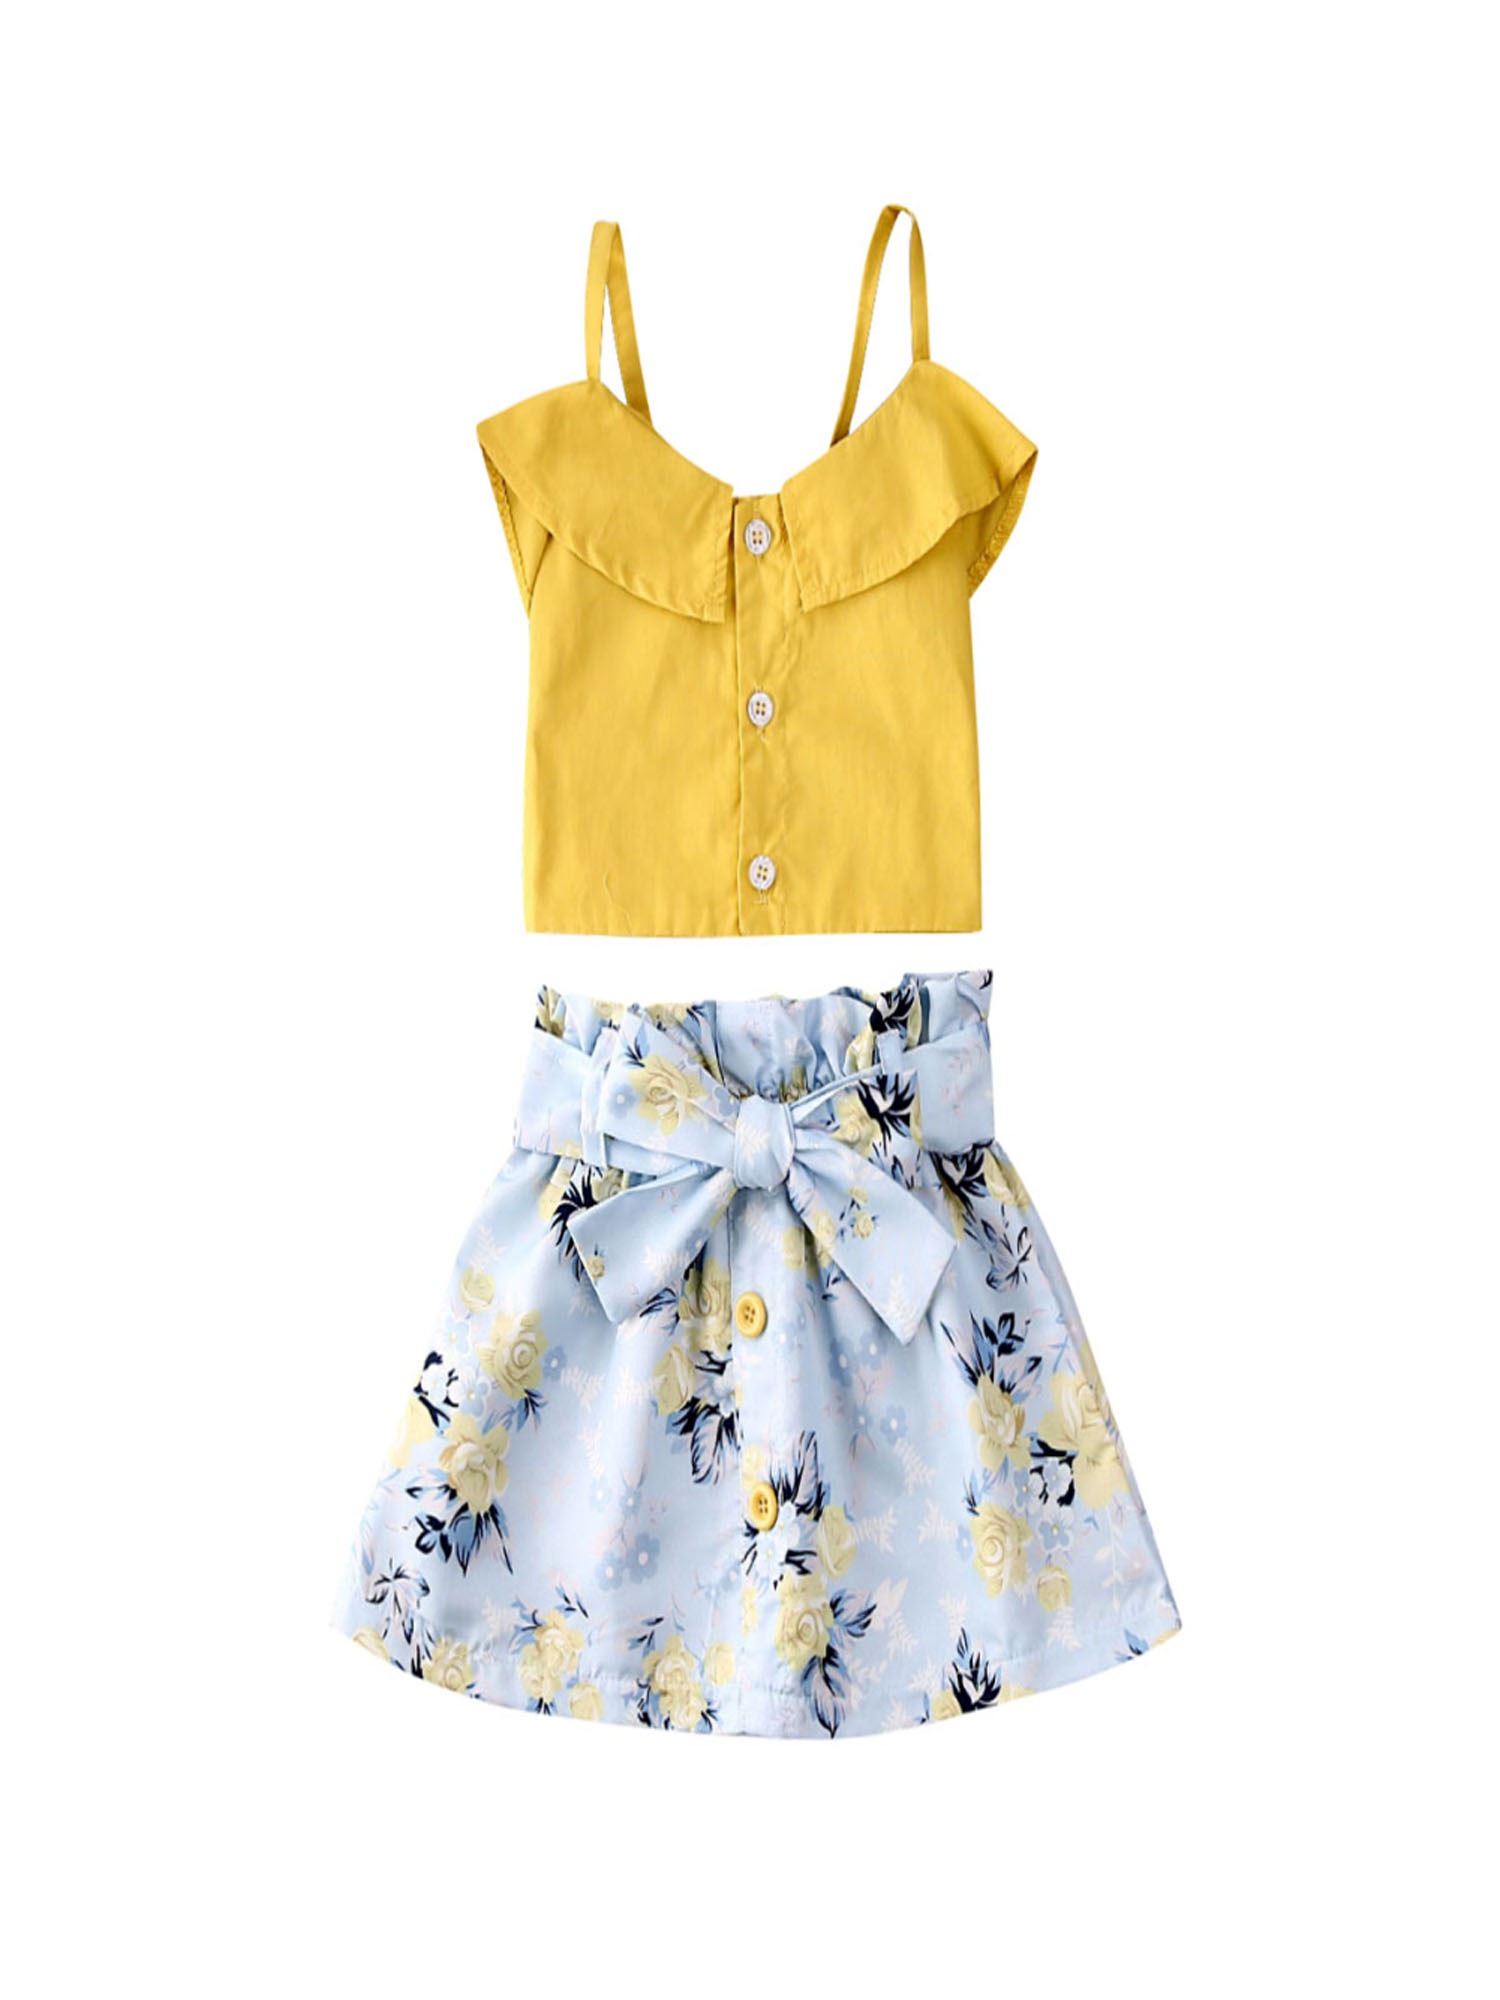 Yellow, 18-24 Months Toddler Baby Girls Shorts Clothes Ruffle Sleeveless Shirt Top with Shorts 2 Pcs Summer Pajamas Clothes